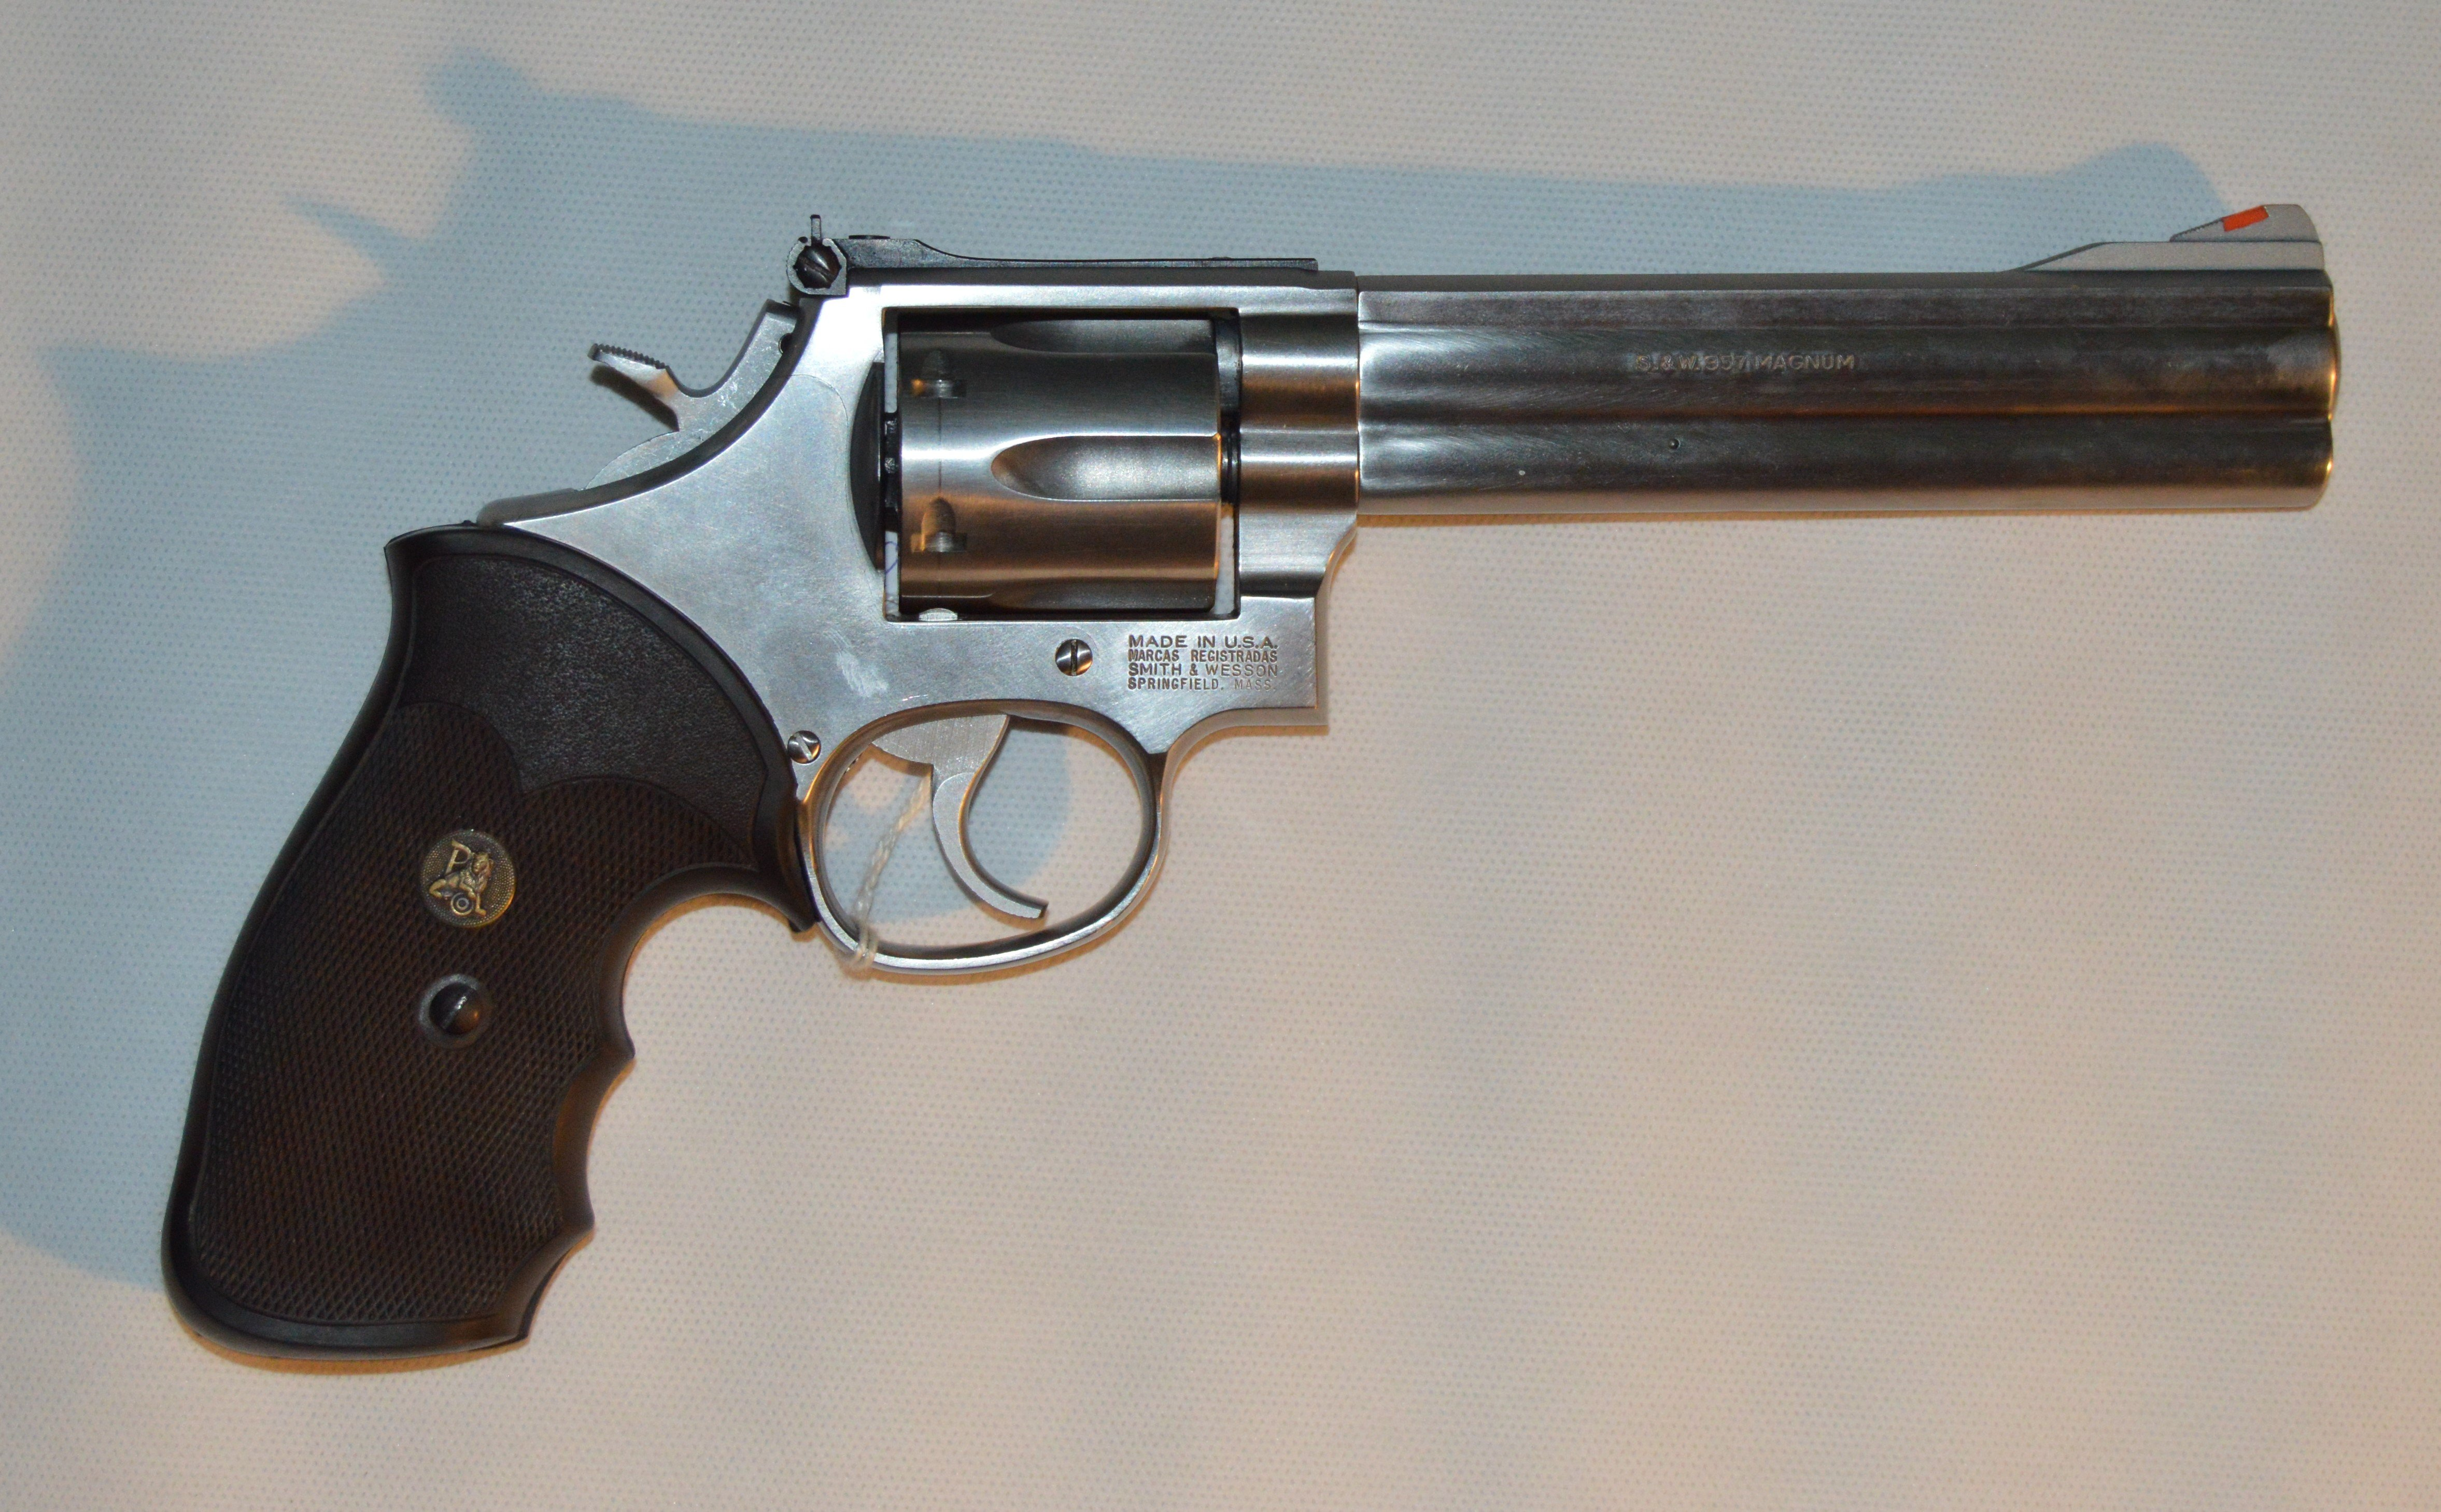 Smith & Wesson Mod. 686 kal. 357MAG